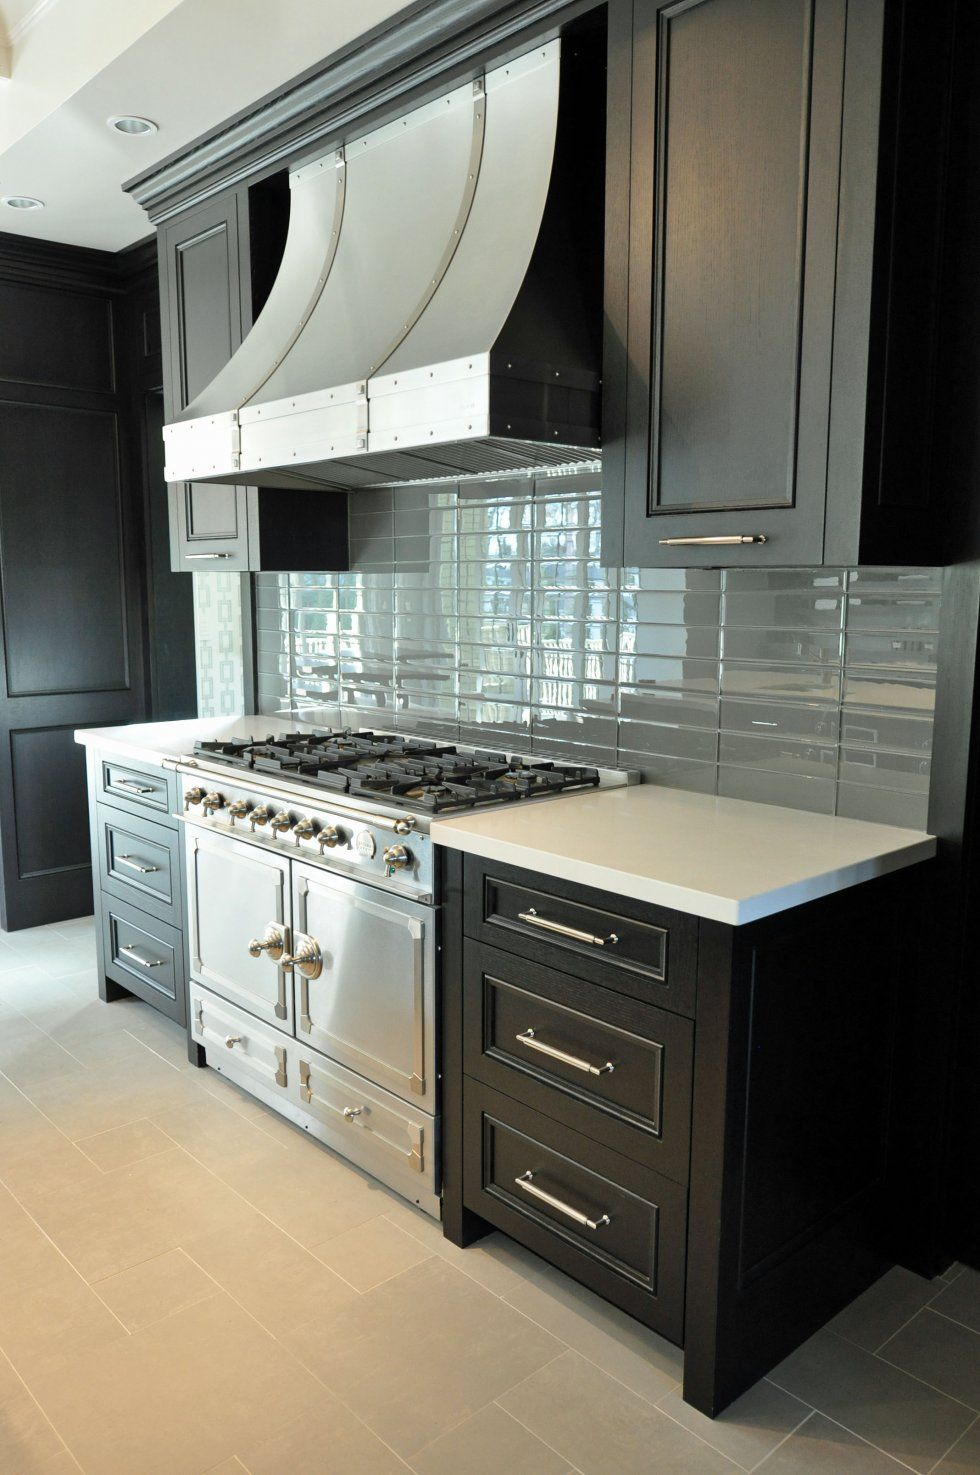 I D Like This Stove Hood But Maybe With Some Copper Or Bronze Or Brass Warmer Metals Cottage Kitchen Cabinets Kitchen Design Kitchen Remodel